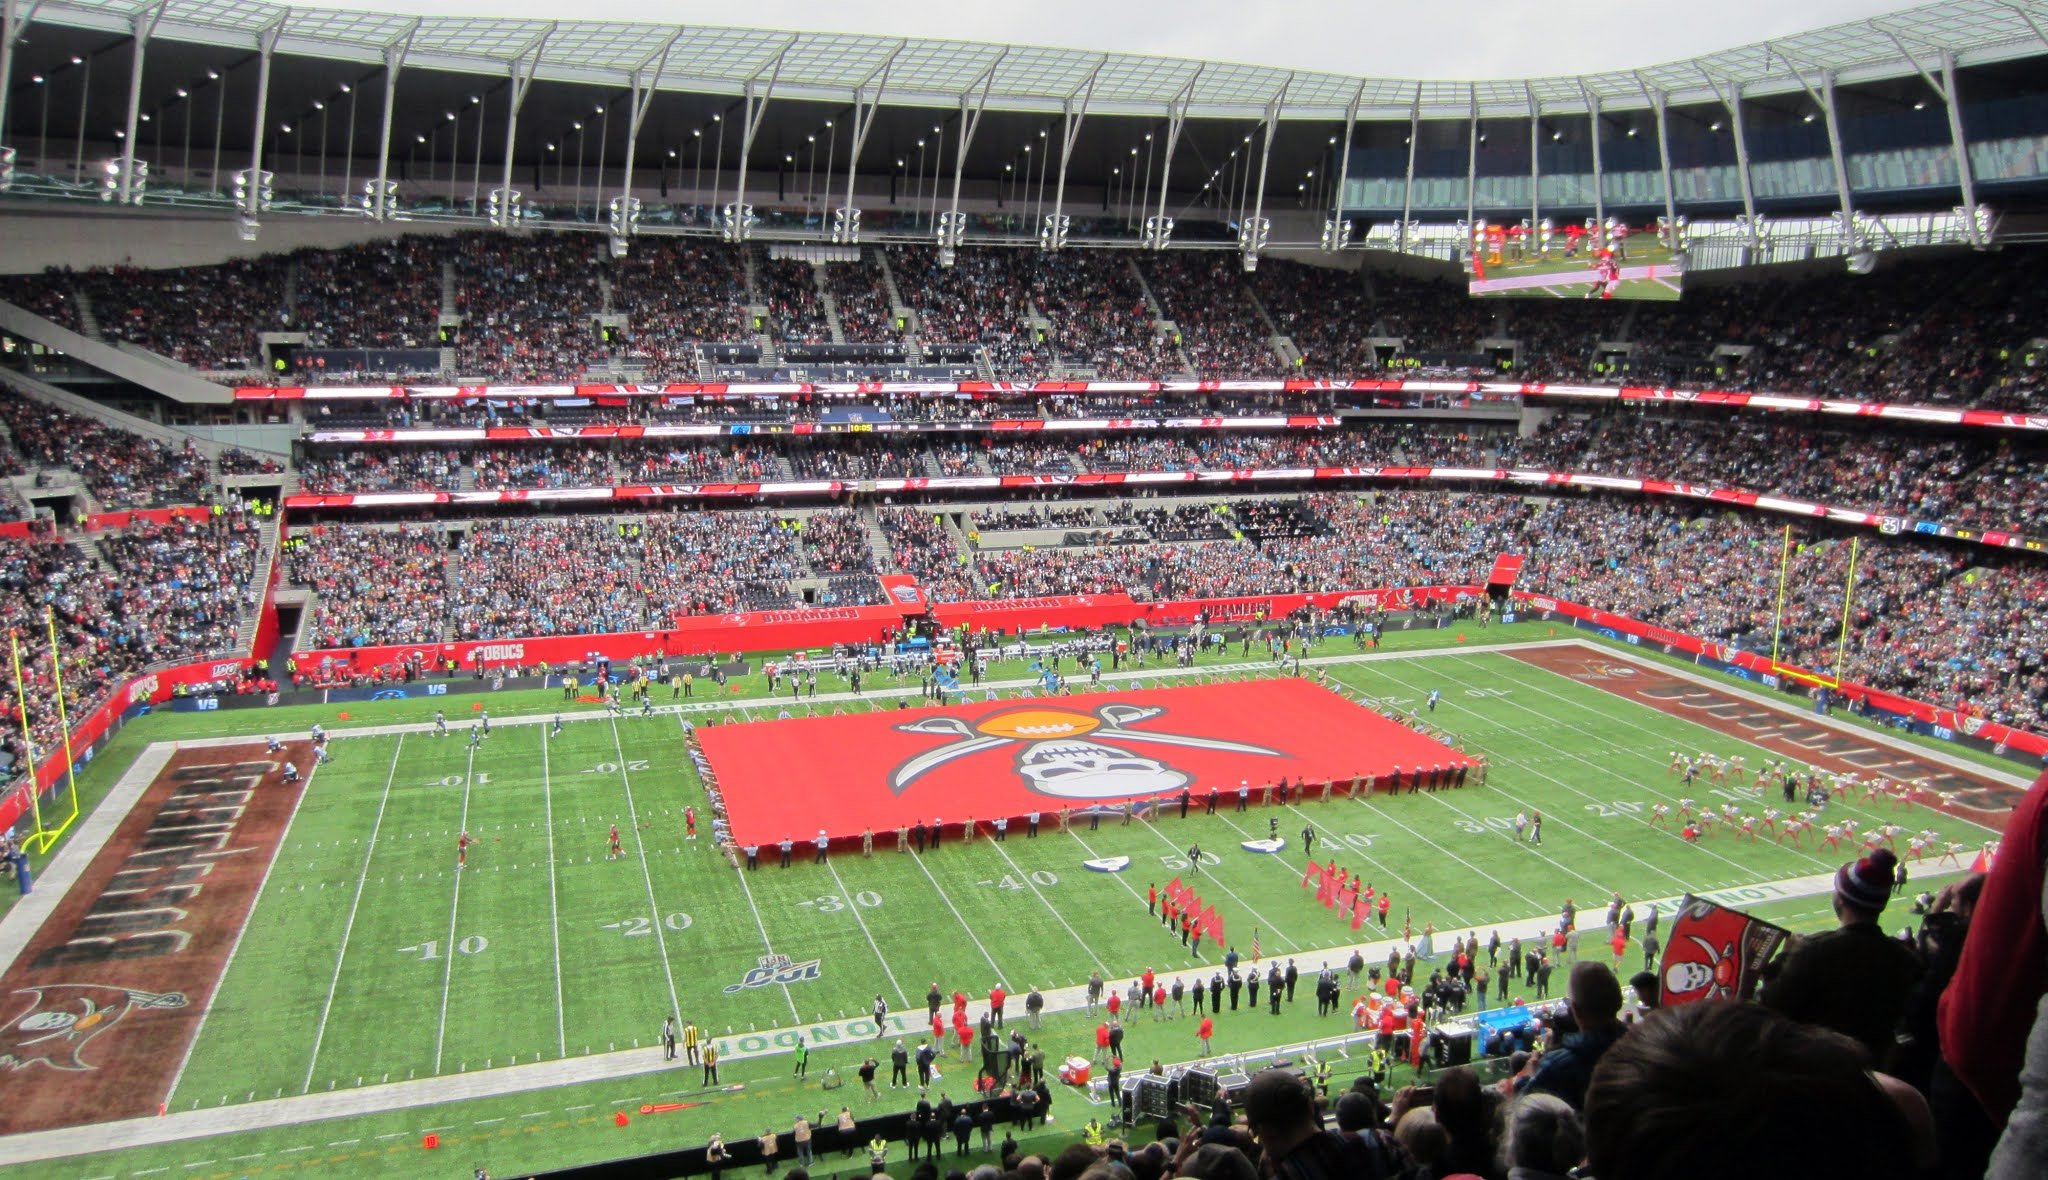 Large Tampa Bay Buccaneers flag covers the field at Tottenham Hotspur Stadium